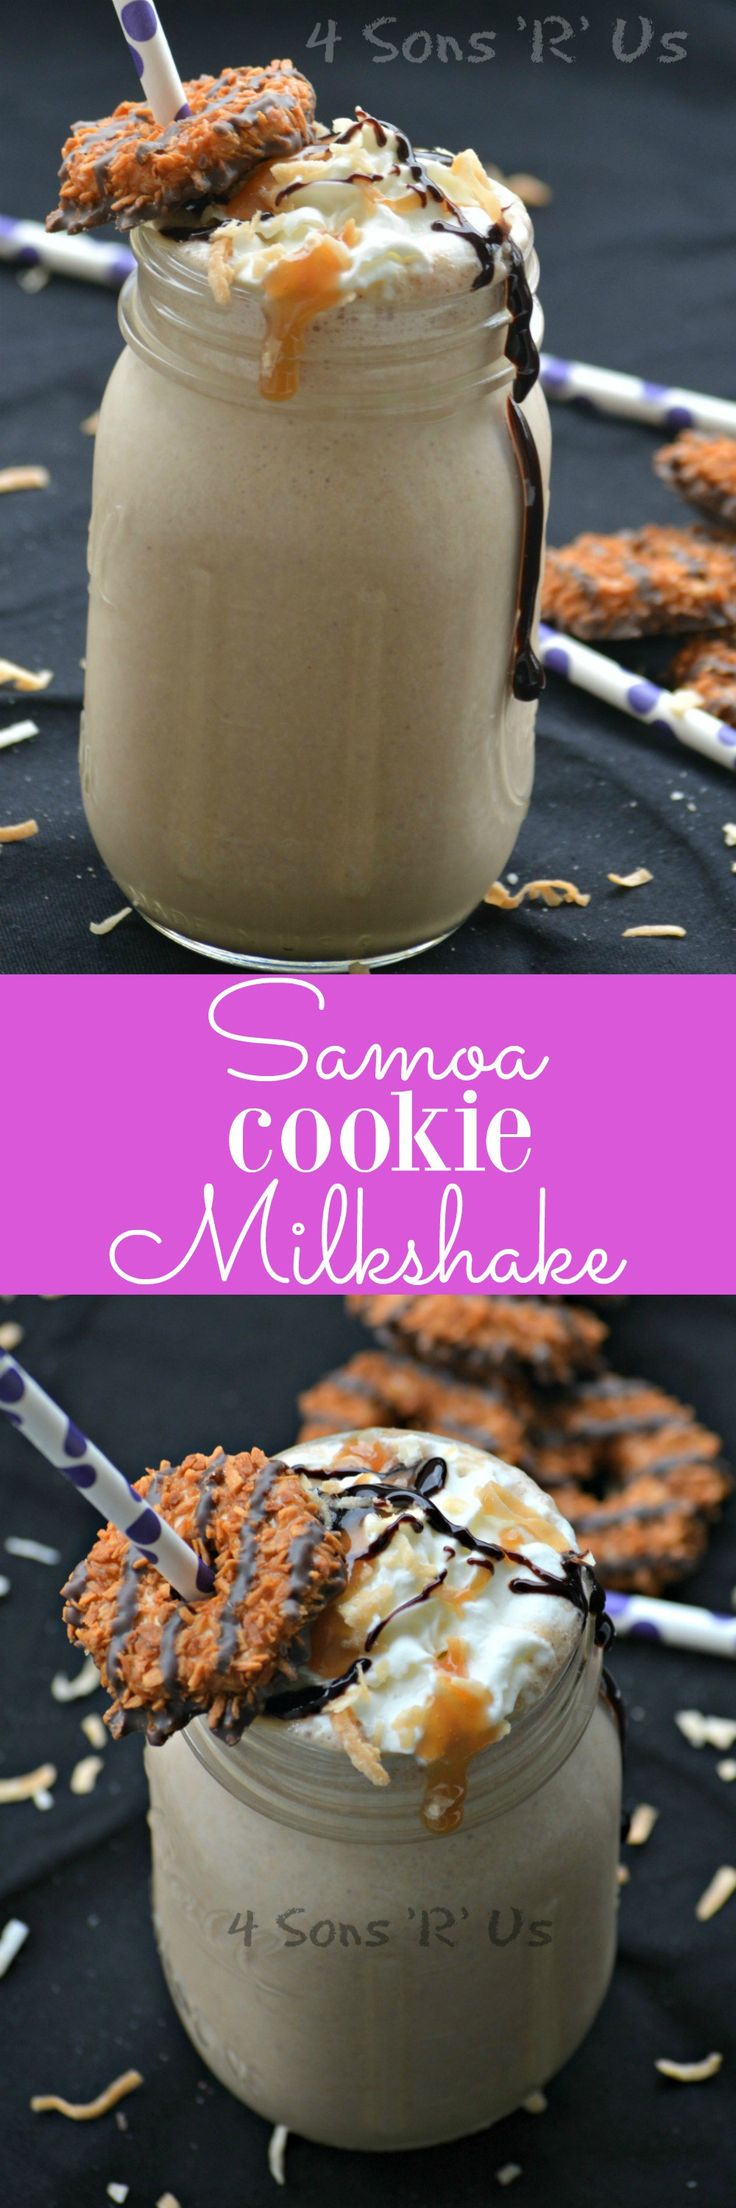 A thick and creamy milkshake that tastes exactly like the beloved Girl Scout Cookie. This Samoa Cookie Milkshake is a winning flavor combination.